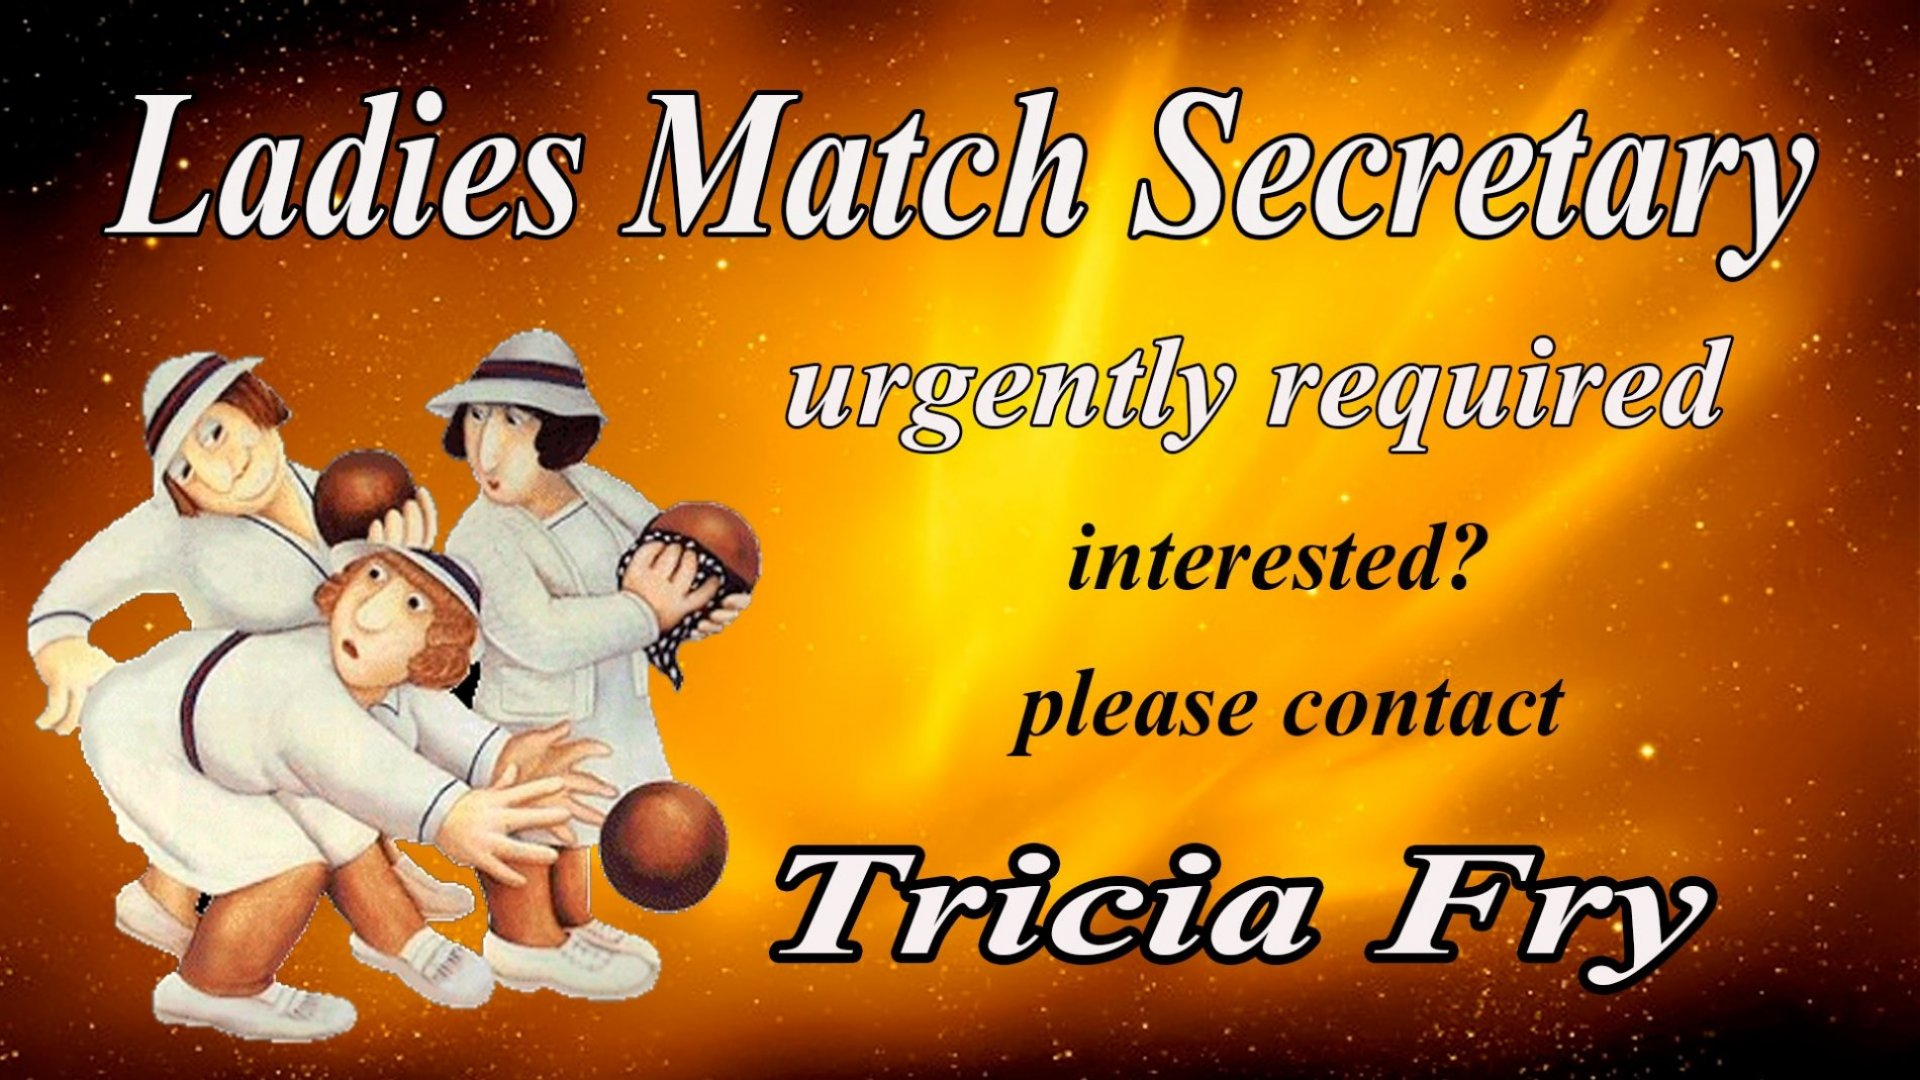 Ladies Match Secretary Advert